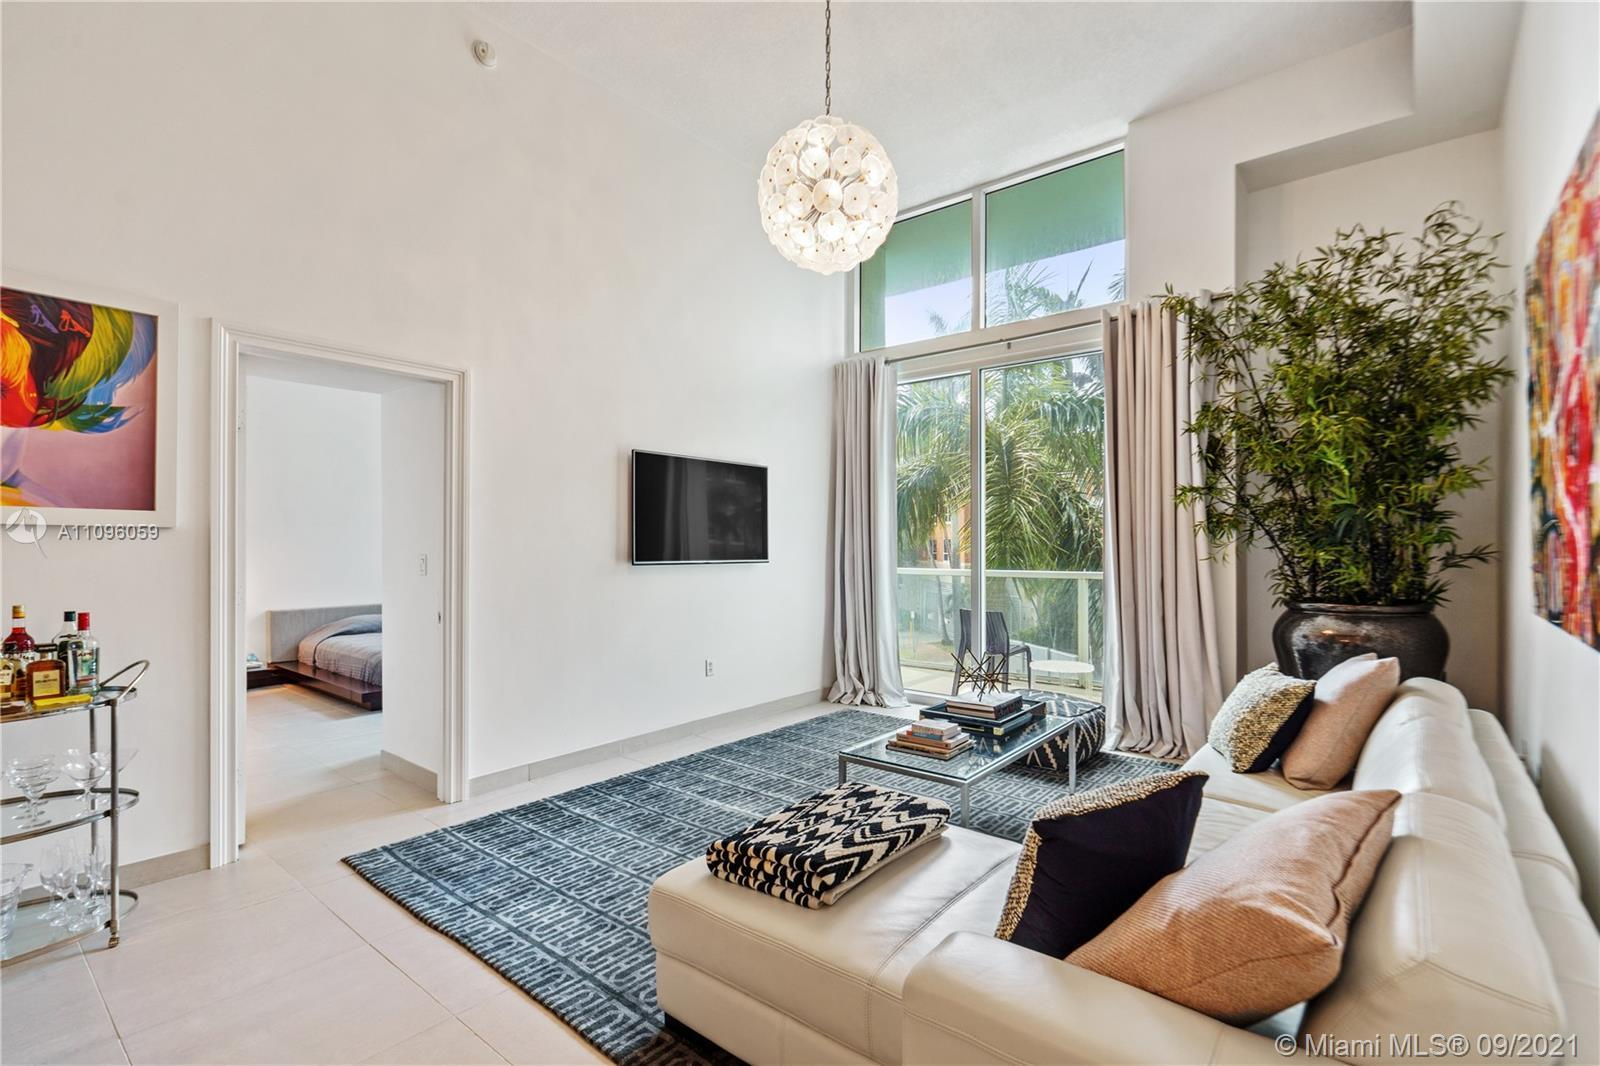 Modern and spacious 1 bed 1 bath 753 sq ft unit offering a spacious open floor plan, featuring Itali